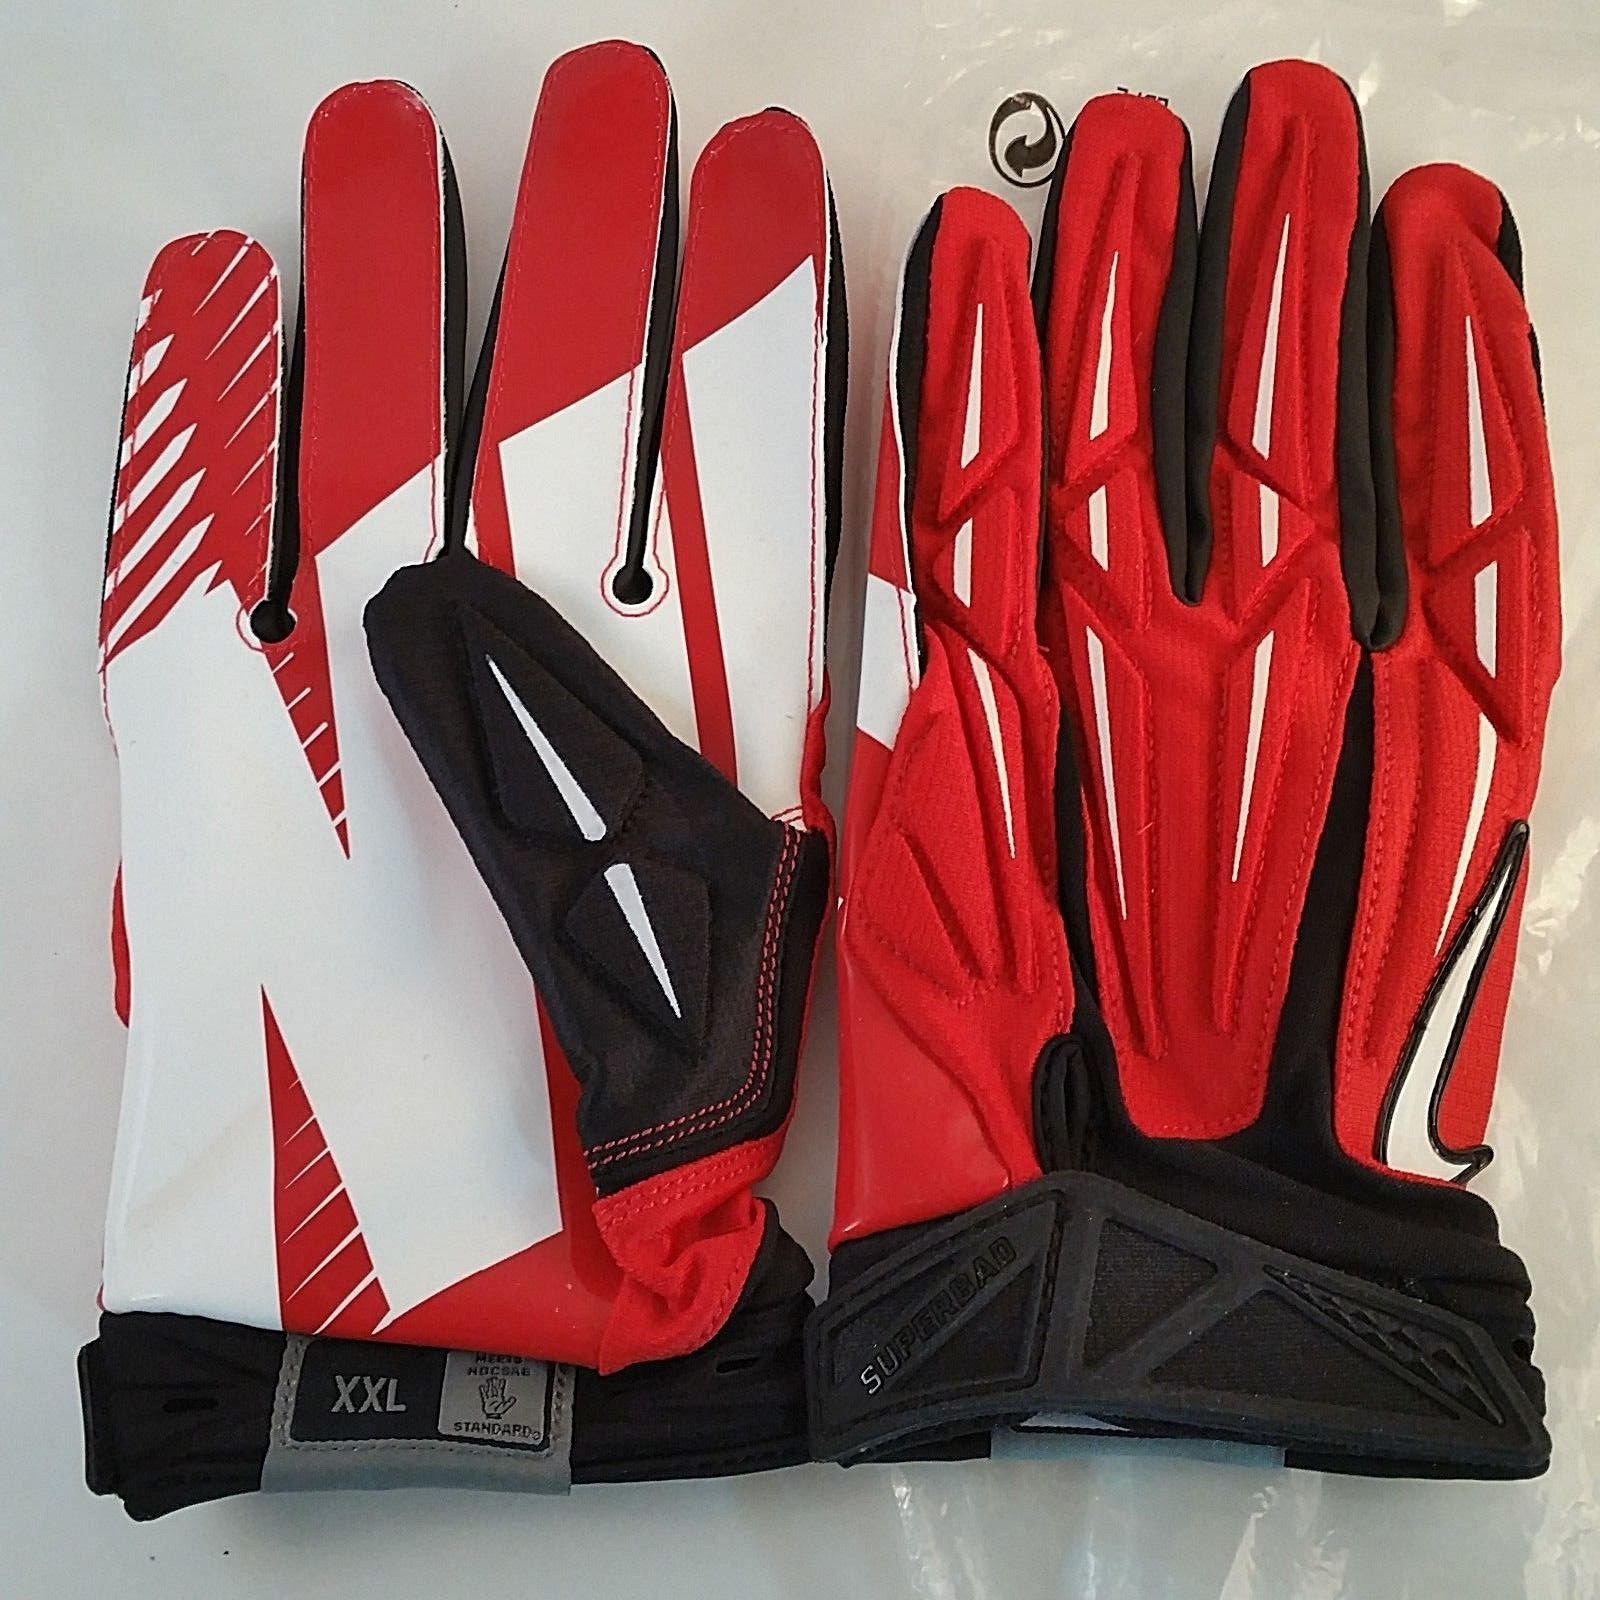 Nike superbad 20 adult 3xl padded football red gloves